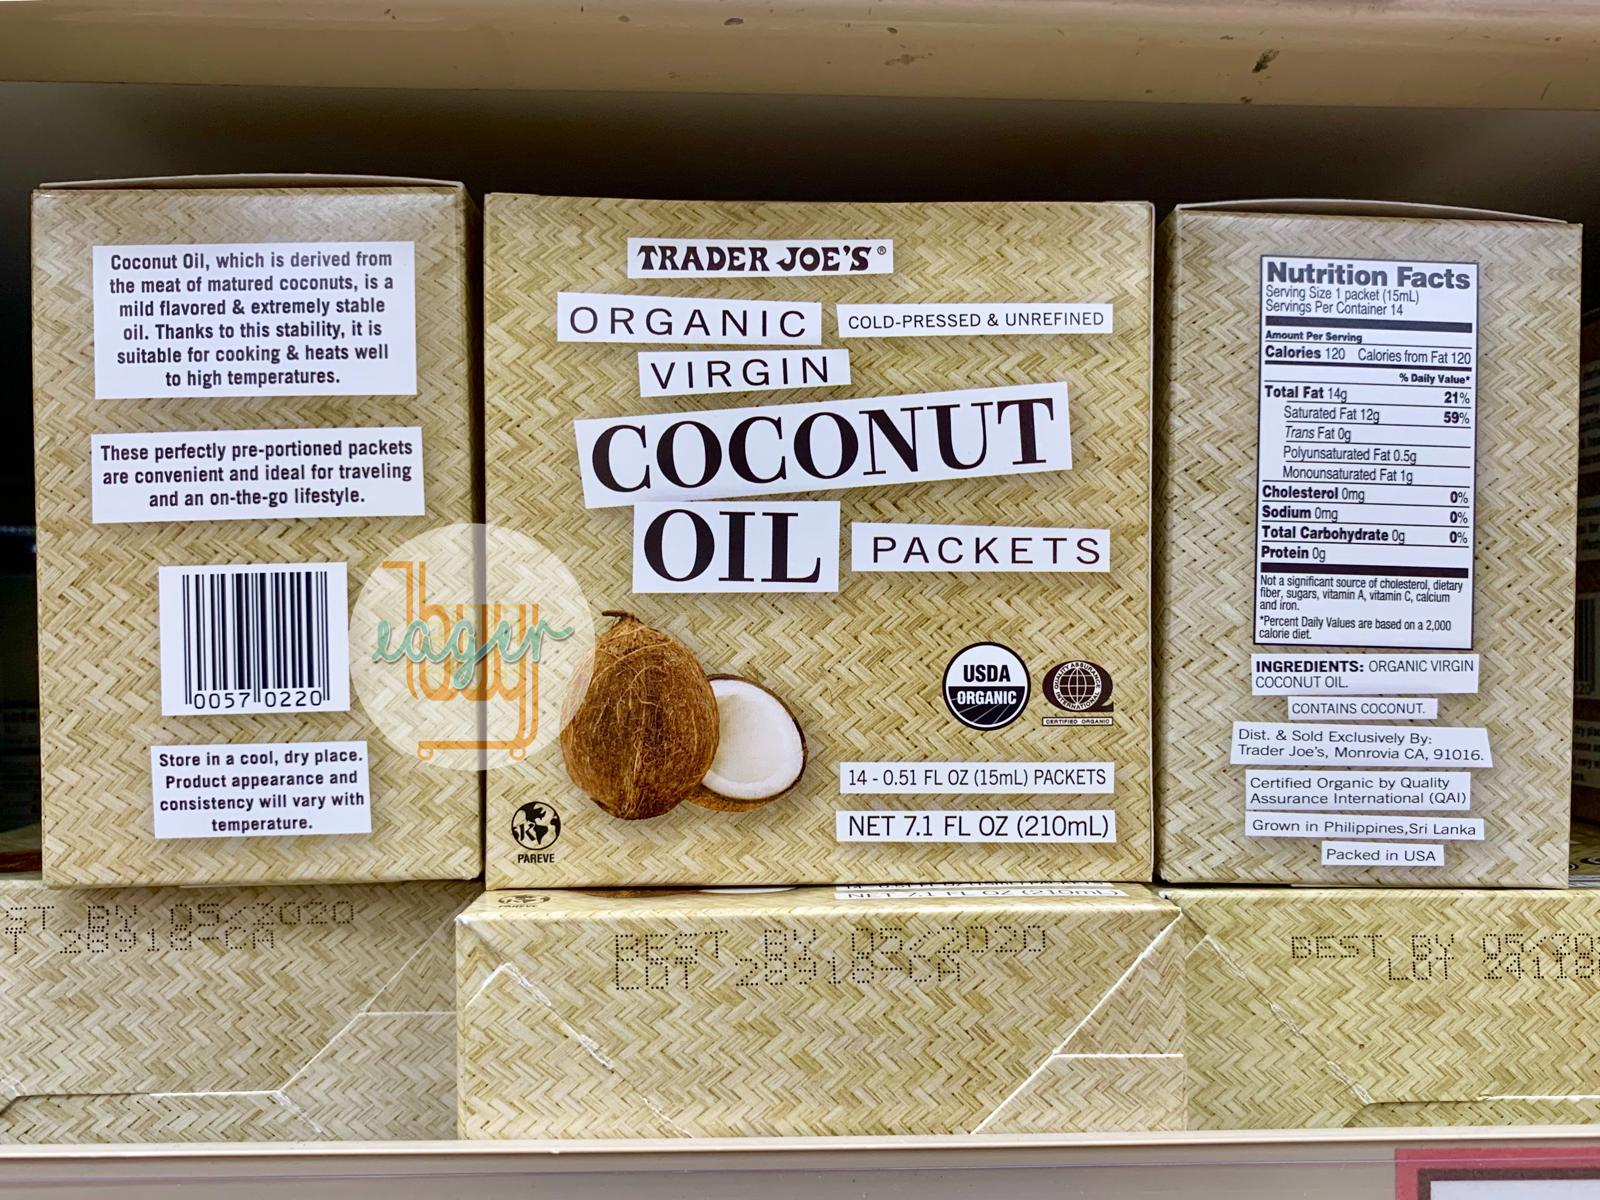 TRADER JOE'S - Organic Virgin Coconut Oil Packets